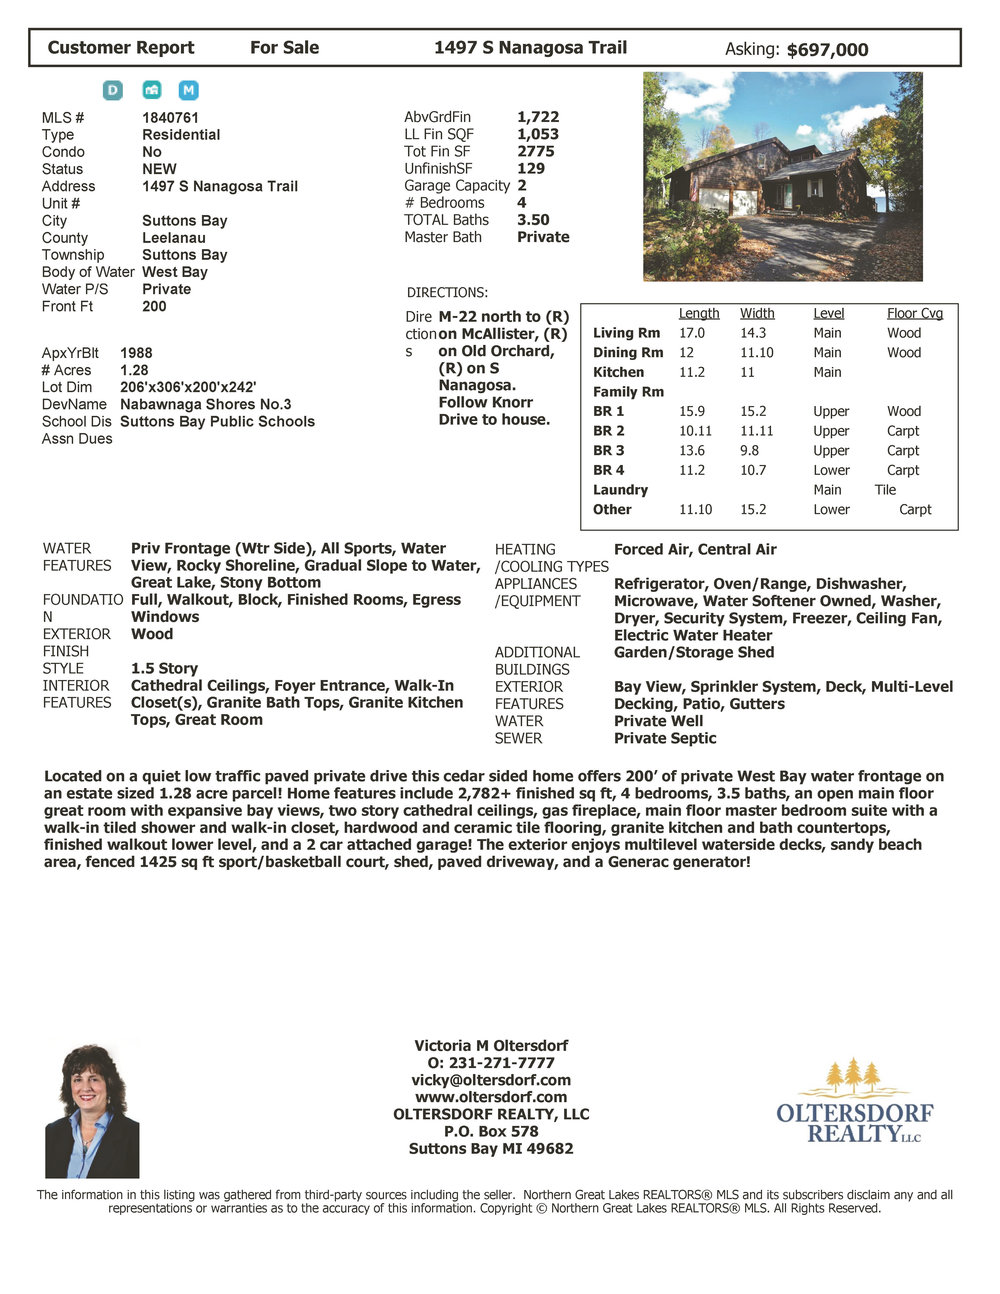 1497 S Nanagosa Trail, Suttons Bay, MI – Home with 200' on West Grand Traverse Bay Full Marketing Packet (1).jpg